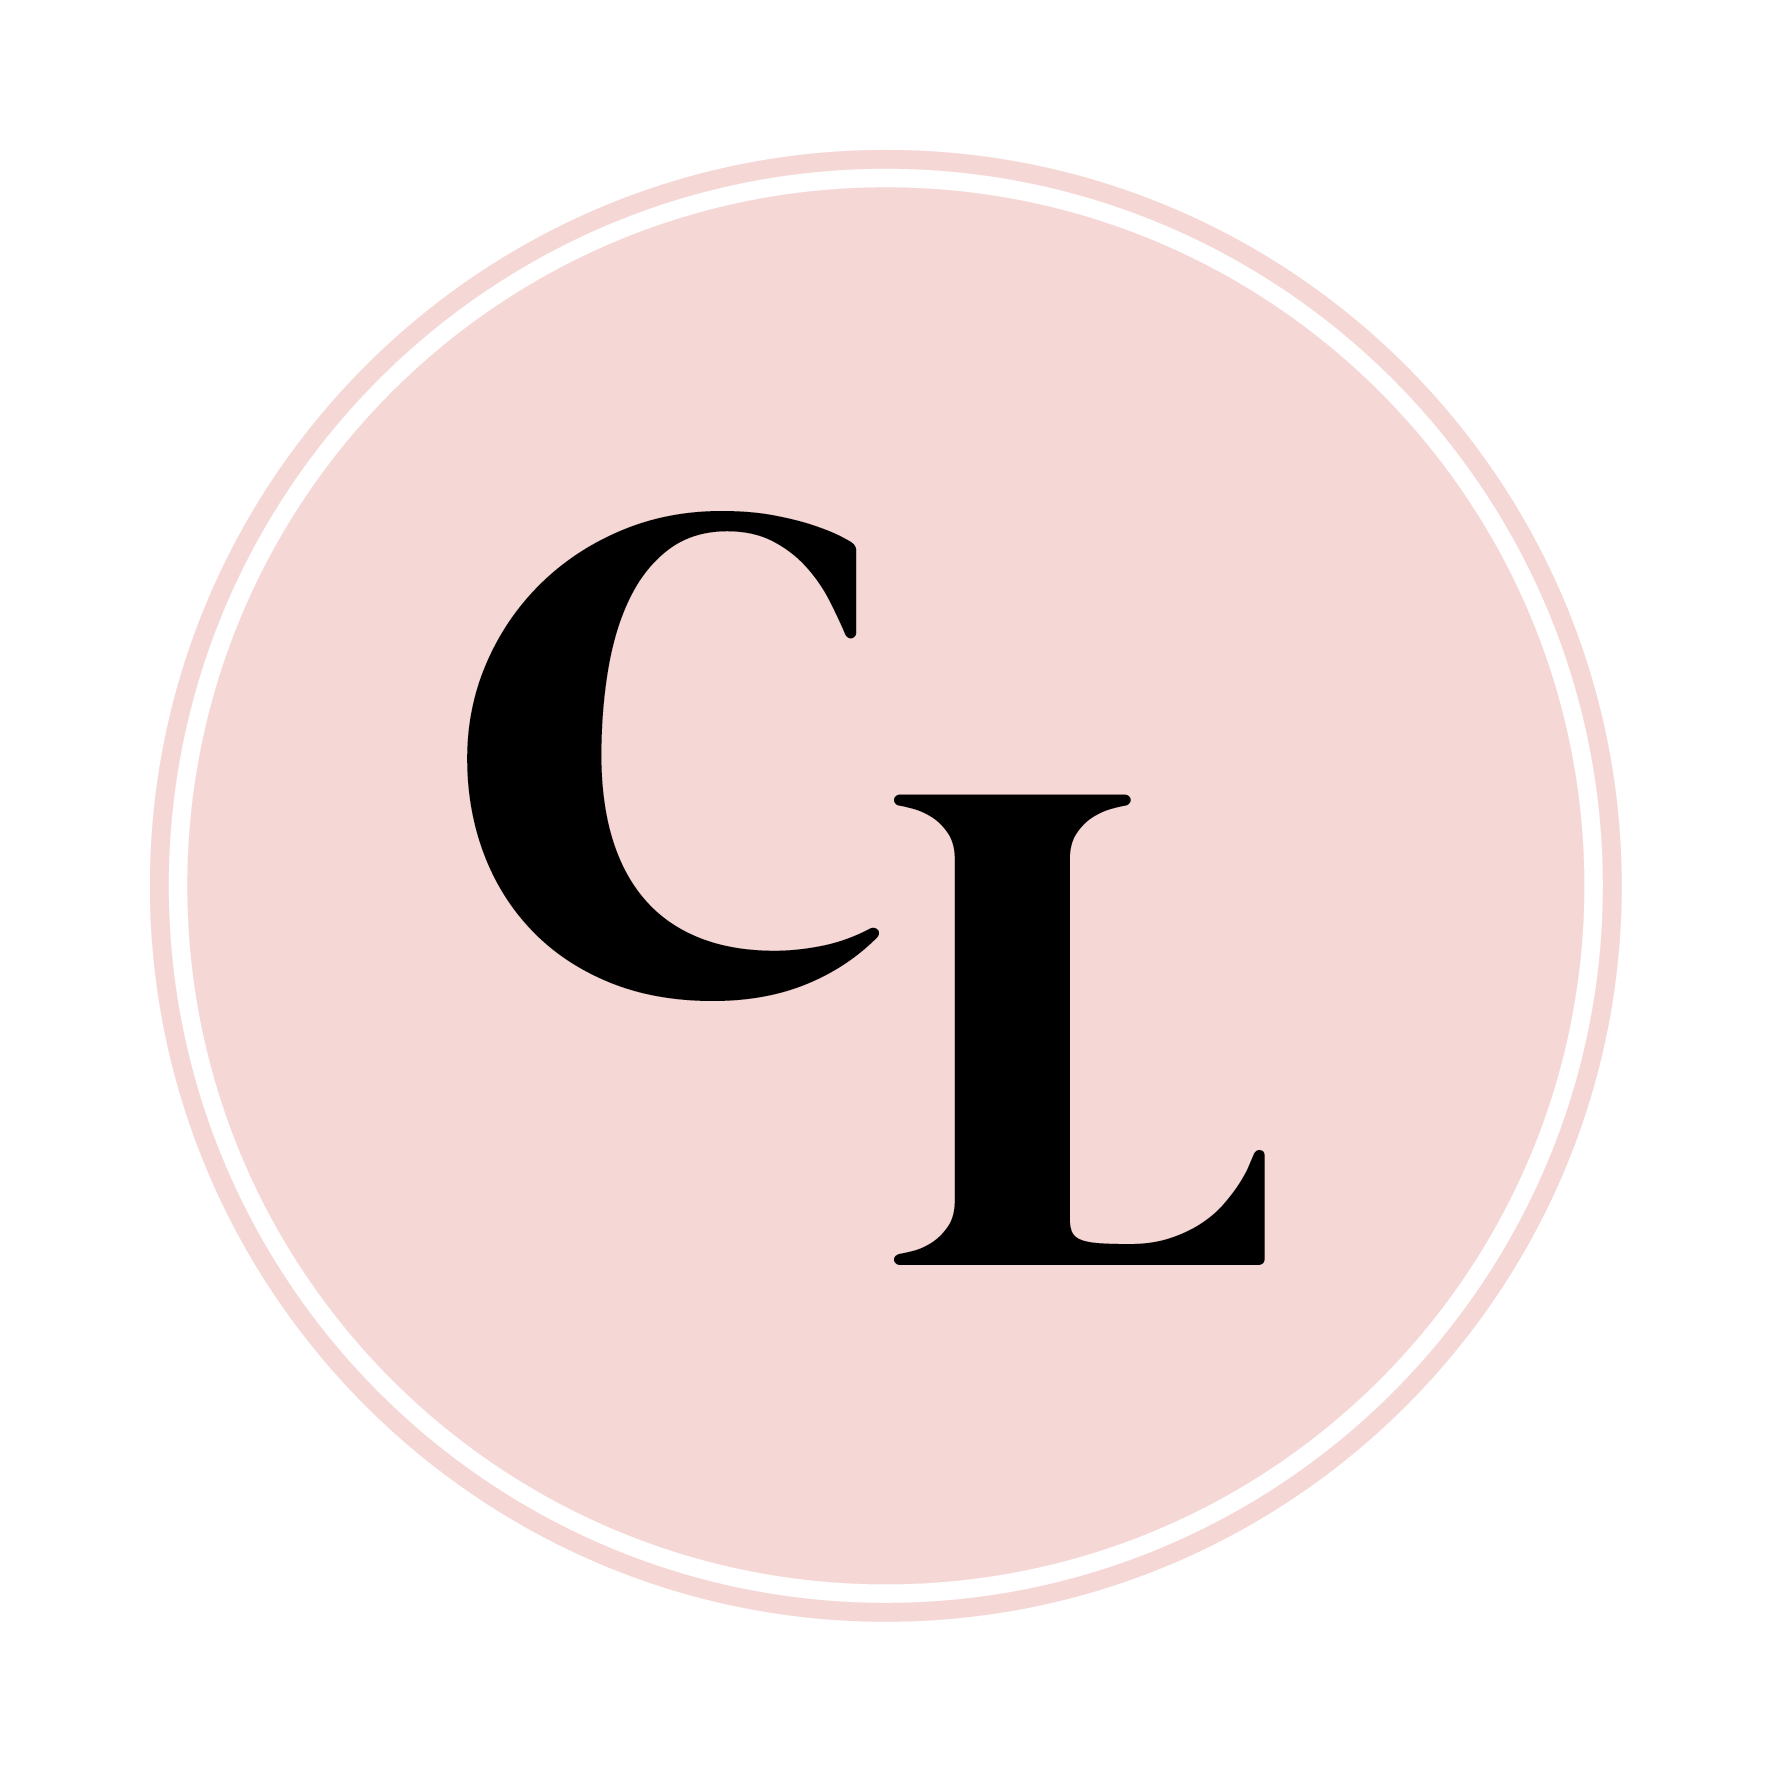 CLM-logo-transparent 16.png